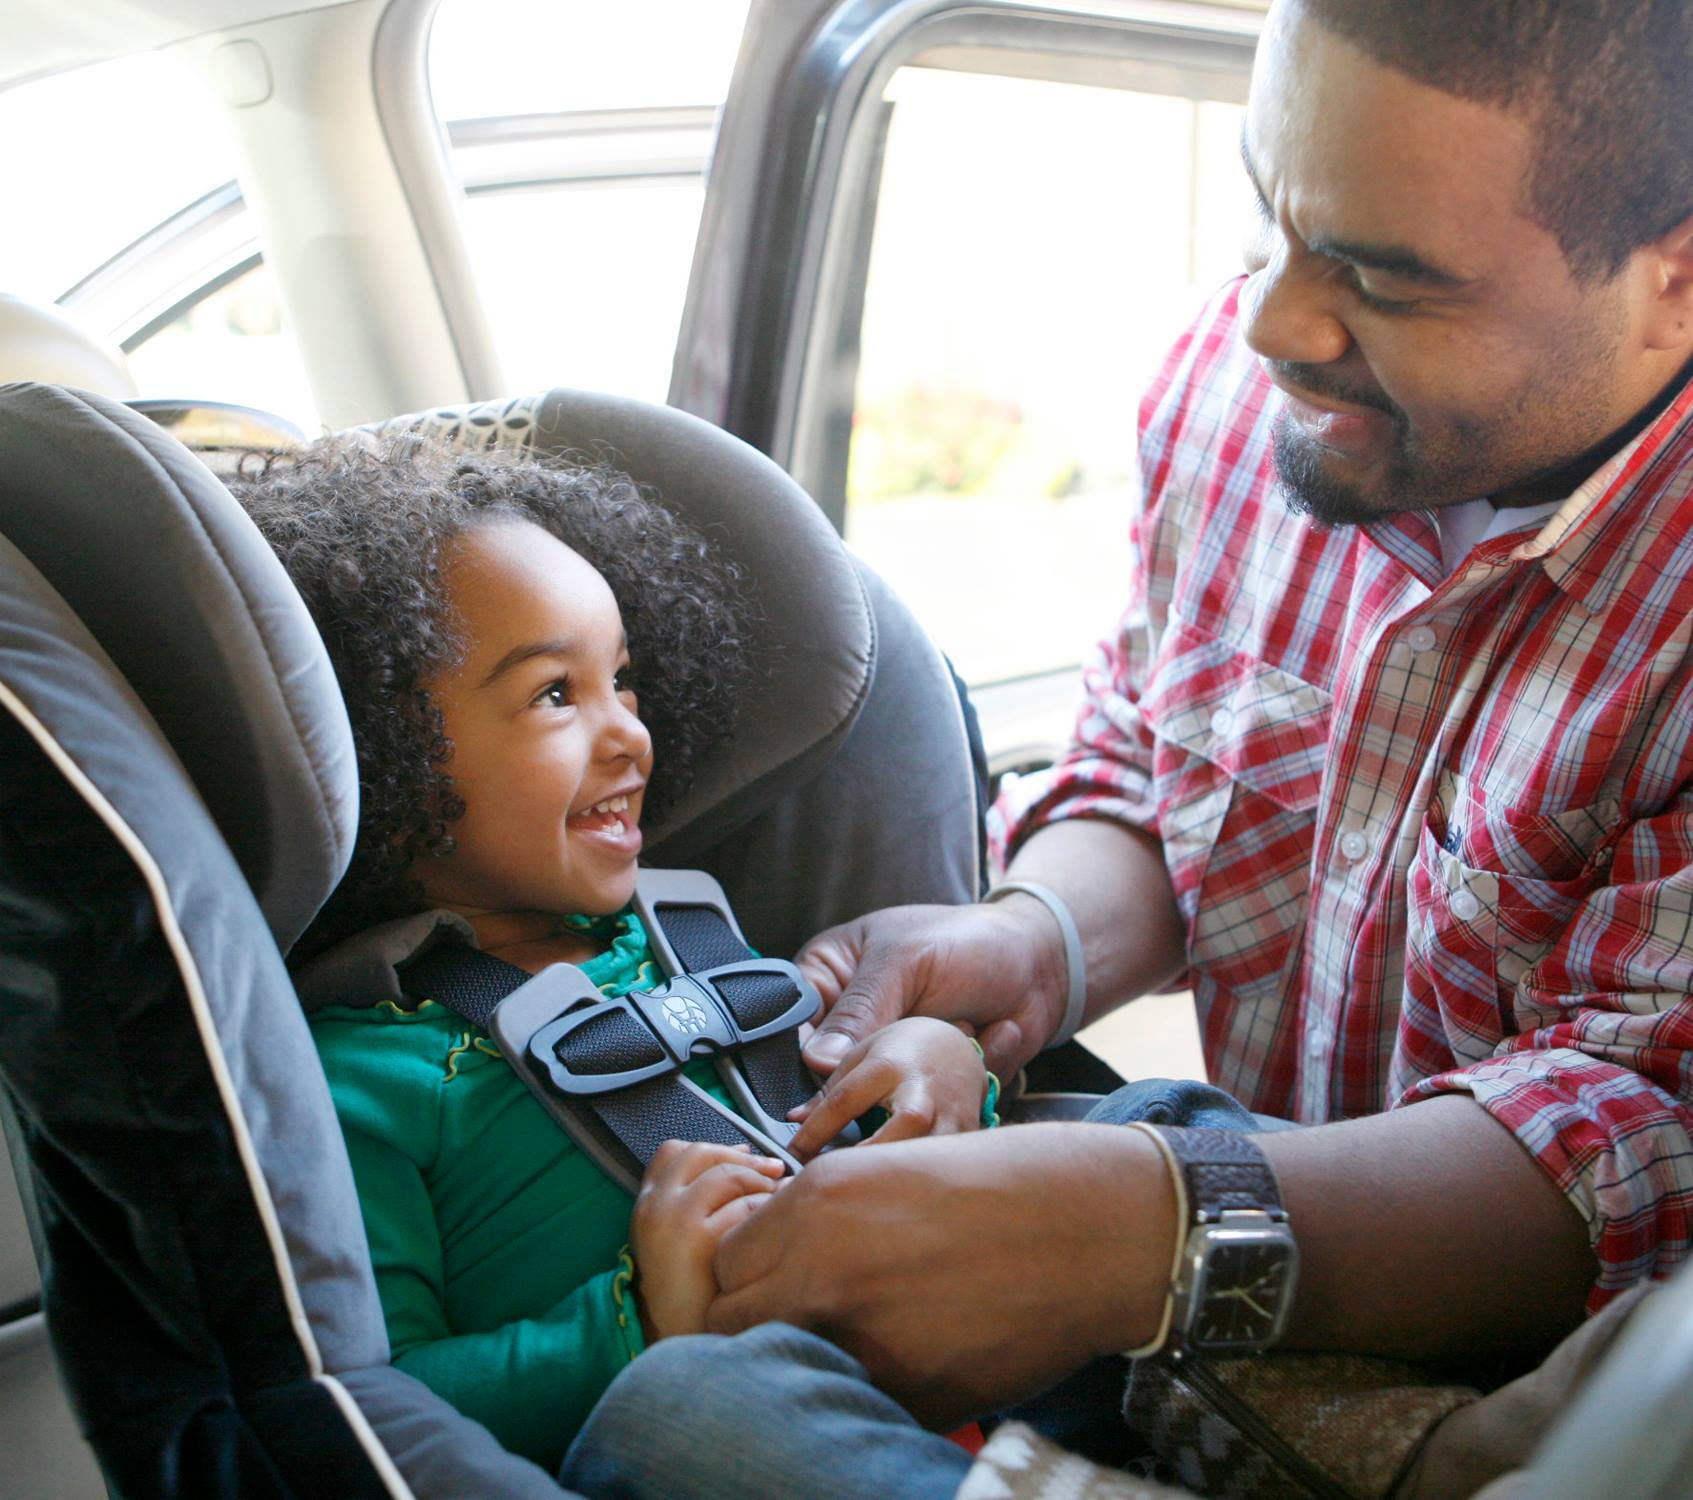 father buckling child into car seat